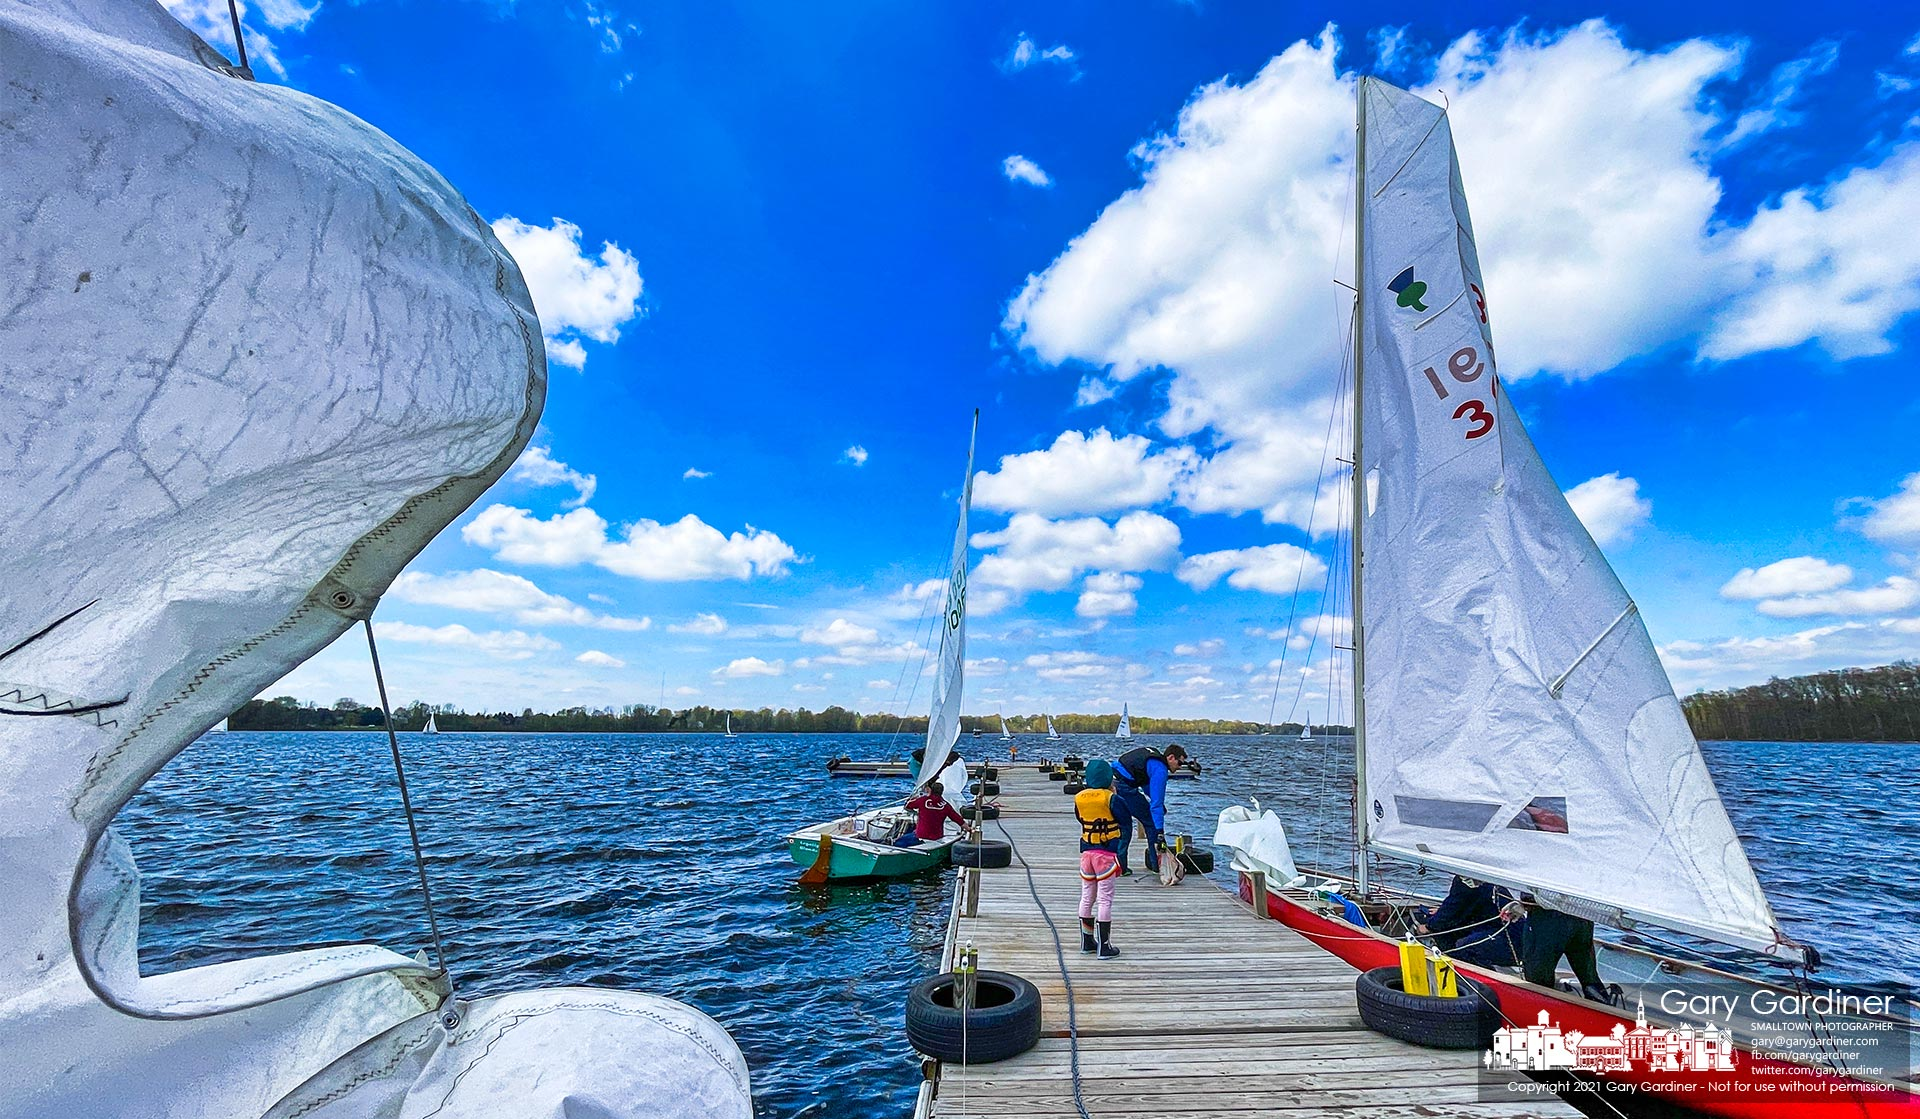 Sailors return to and prepare for launch from the docks at Hoover Sailing Club on a day that brought 30-mph gusts and temperatures in the mid-50s making for brisk sailing. My Final Photo for April 25, 2021.